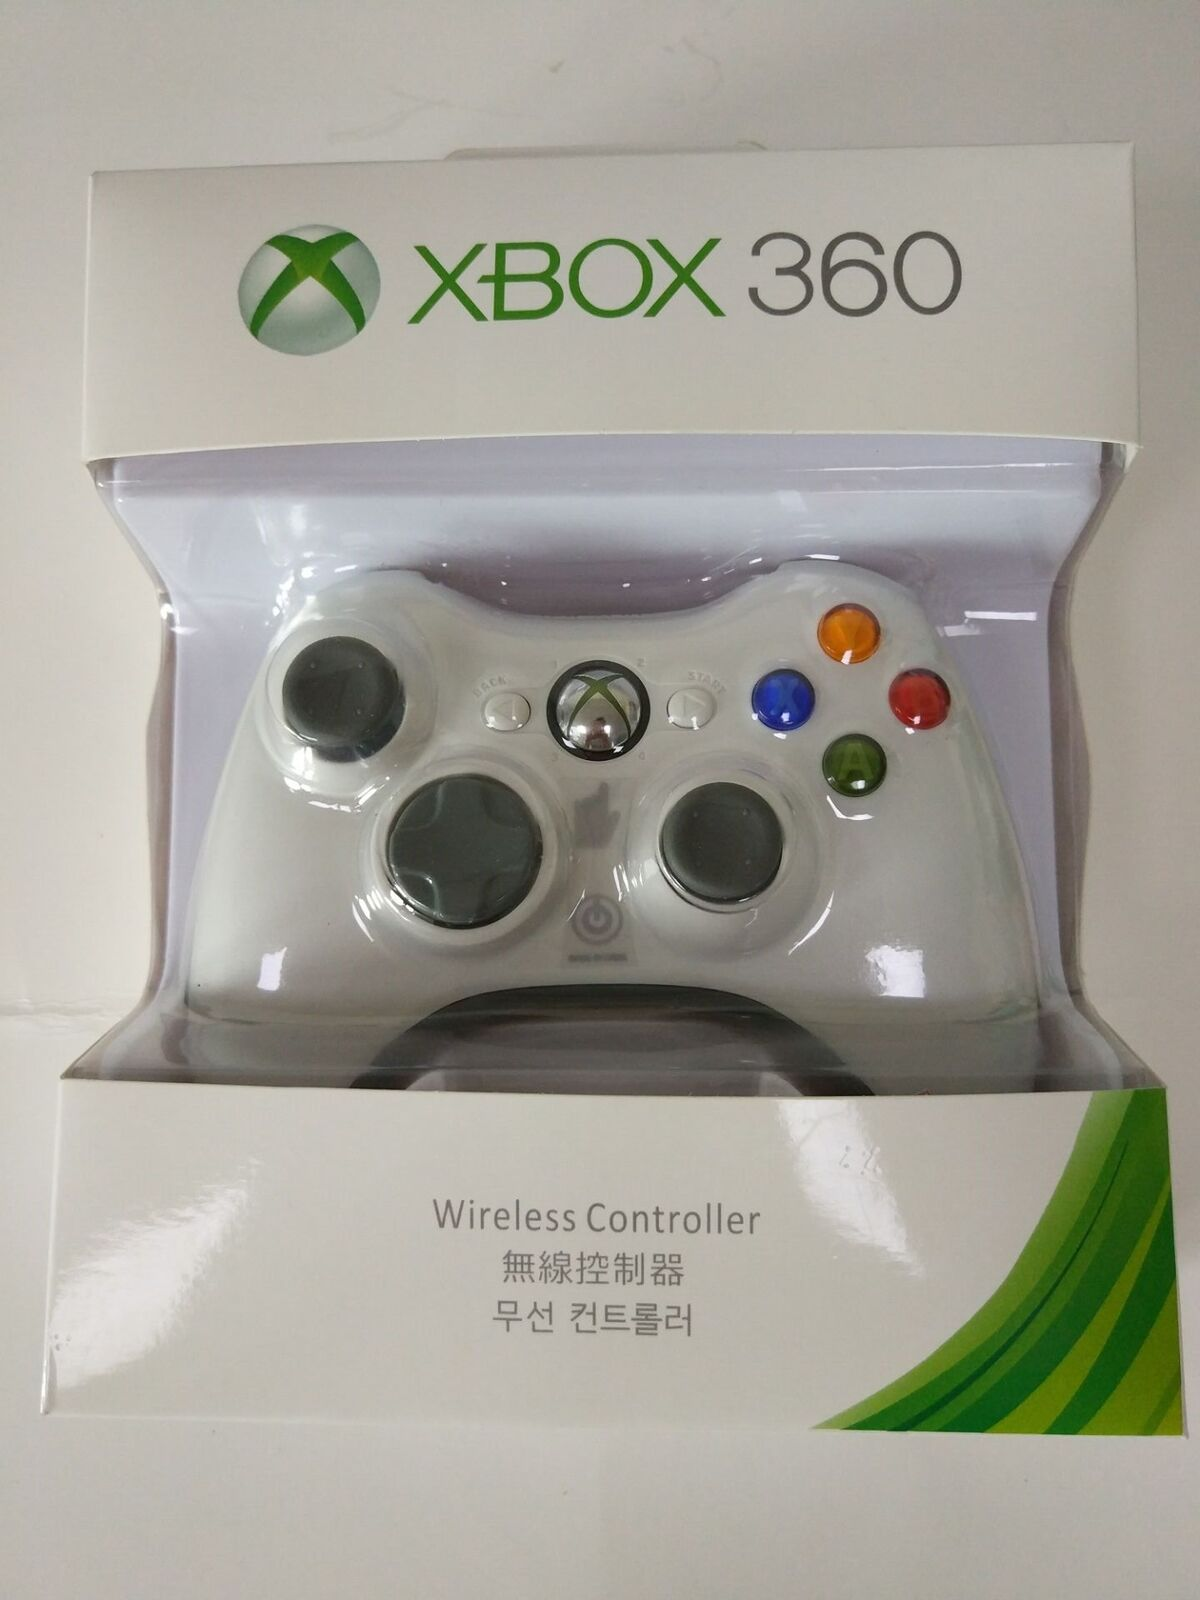 bba7432a1a9 Microsoft Xbox 360 (JR9-00011) Gamepad for sale online